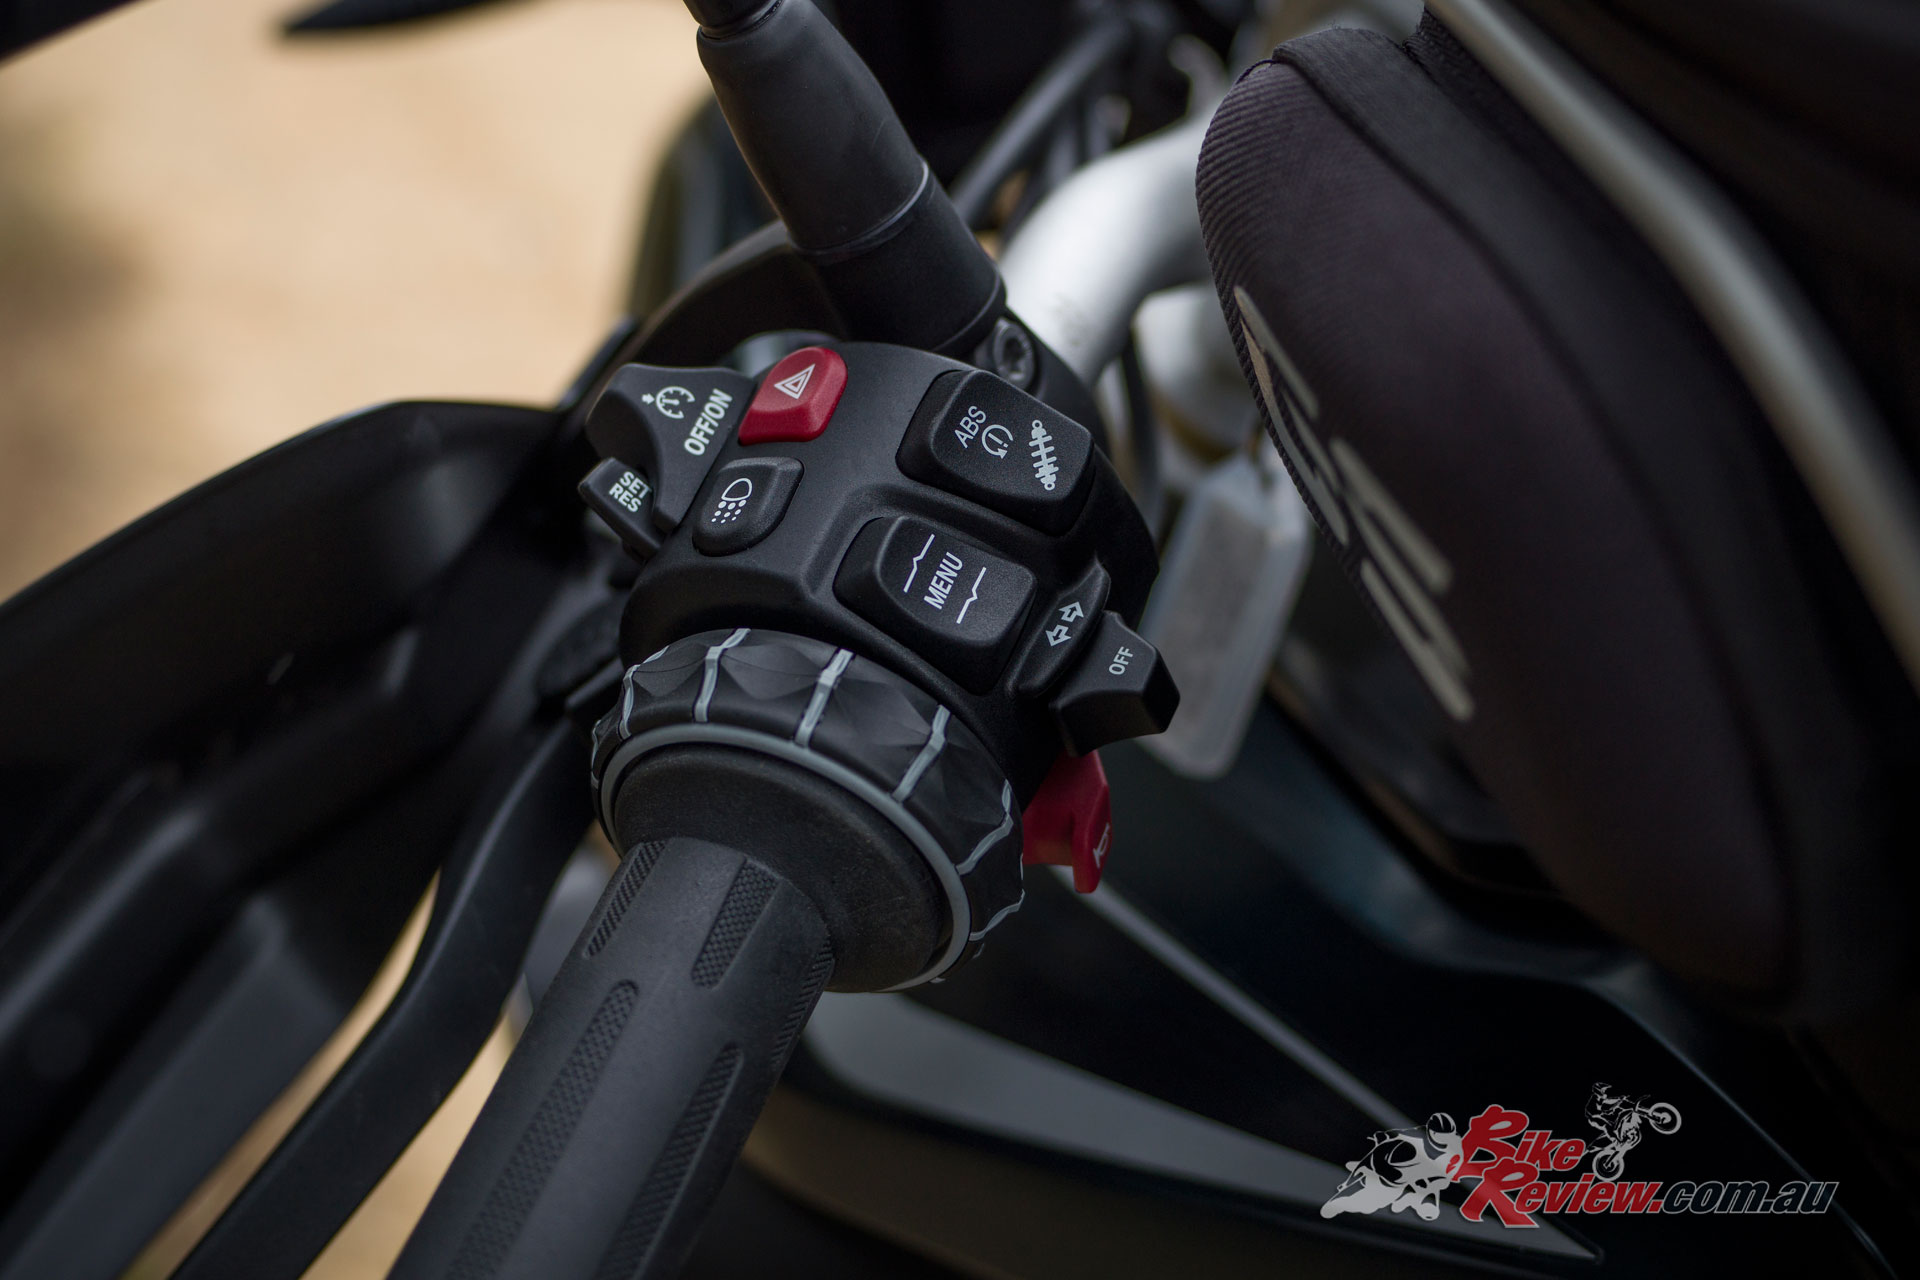 2019 BMW F 850 GS - well thought out, easy to use switchgear that is great quality.